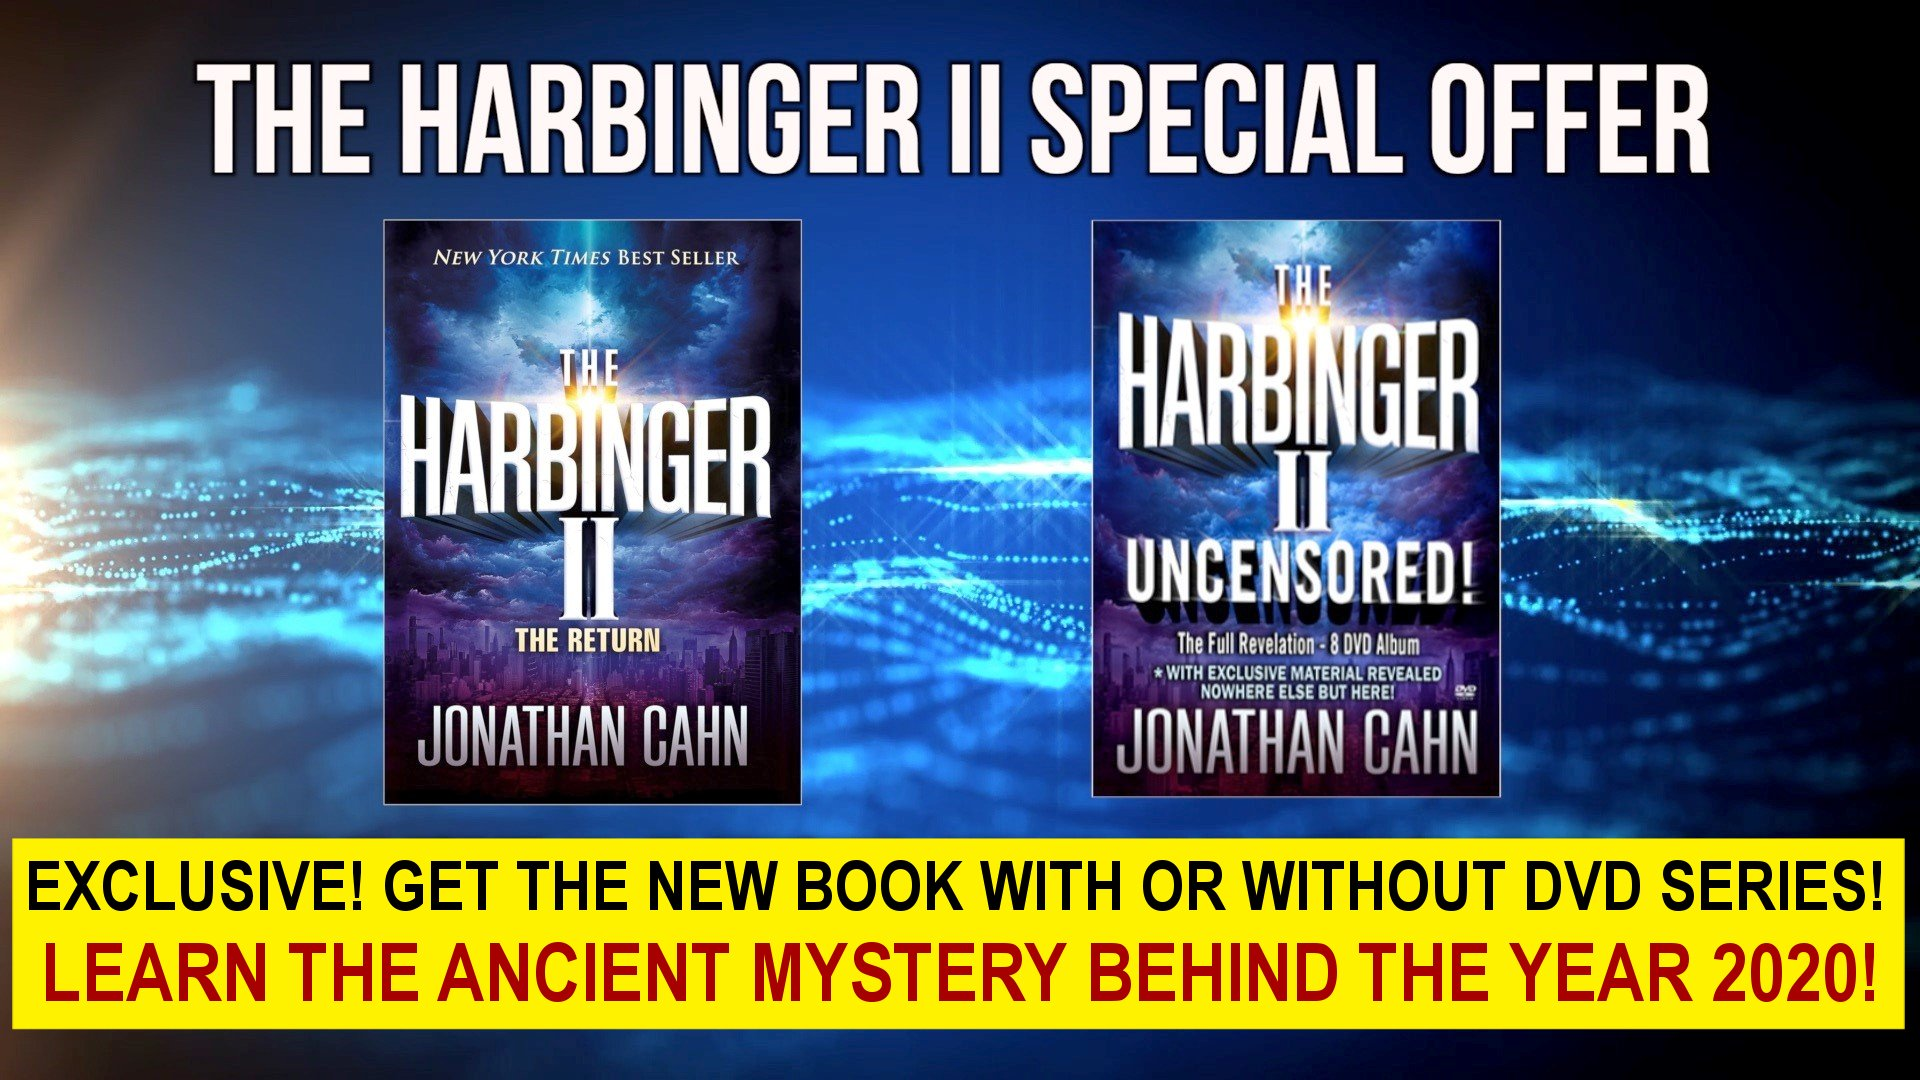 EXCLUSIVE! GET THE NEW BOOK WITH OR WITHOUT DVDS AND LEARN THE ANCIENT MYSTERY BEHIND 2020!